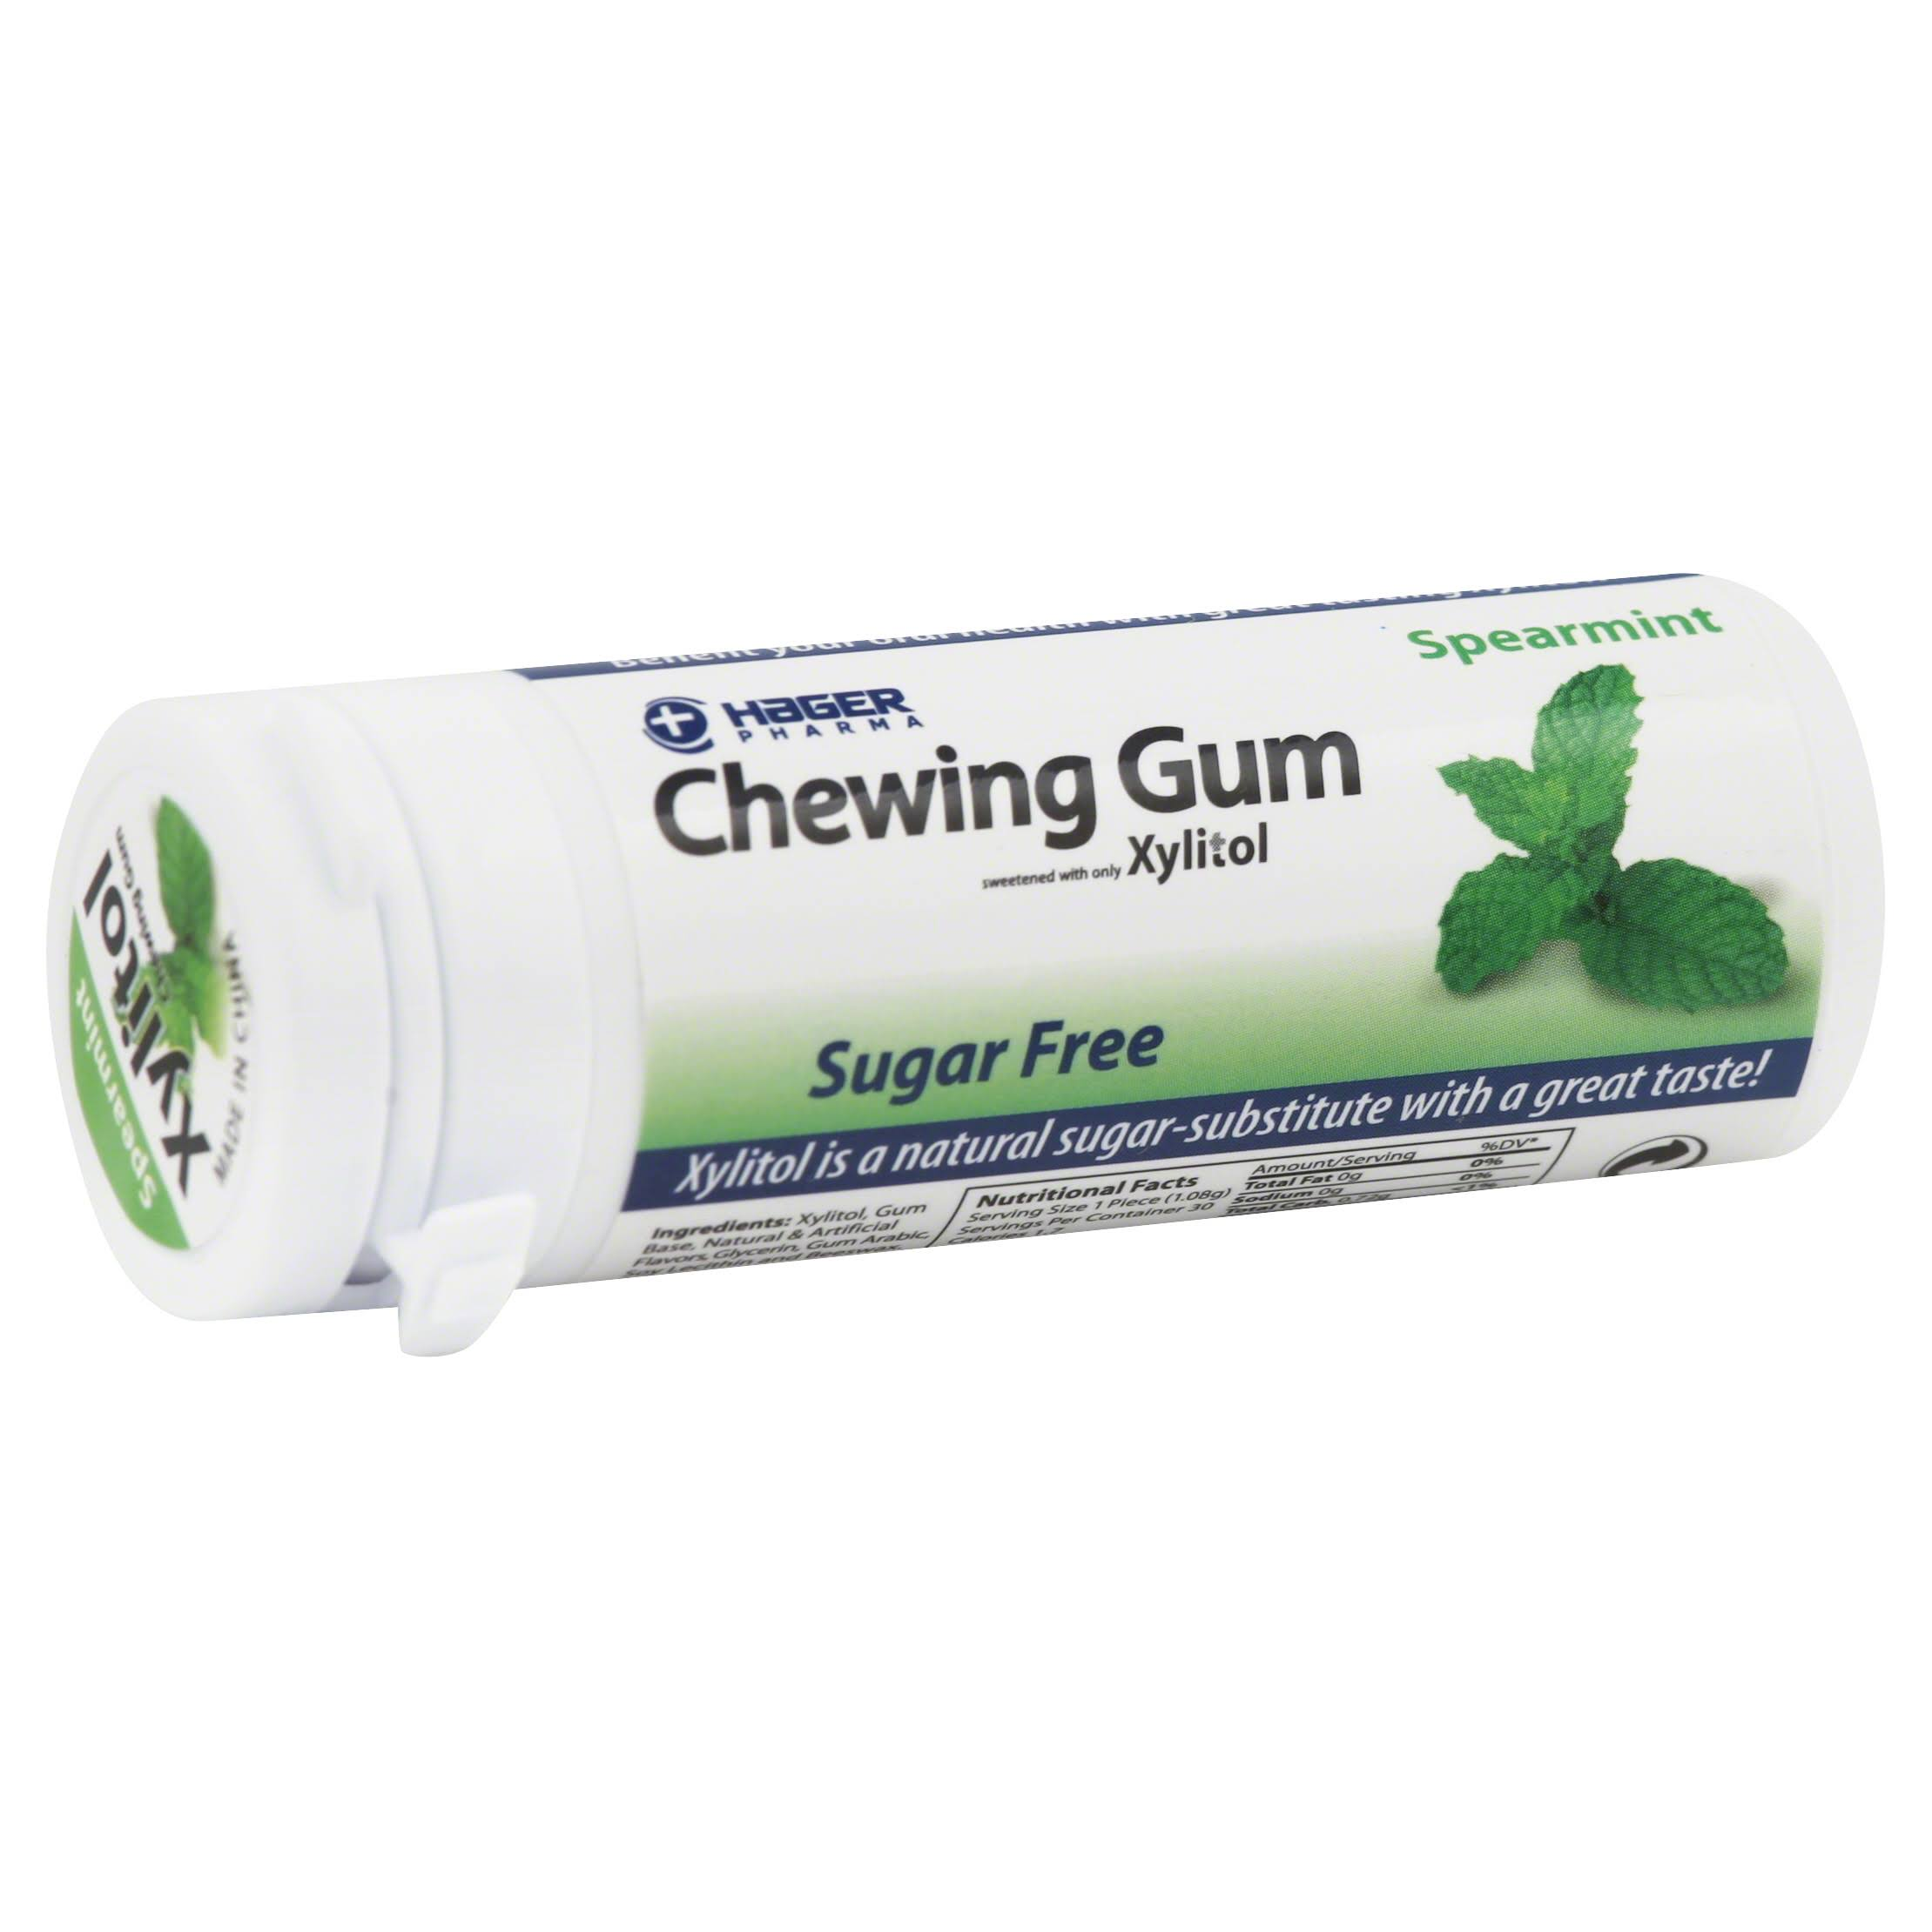 Hager Pharma Xylitol Chewing Gum - Spearmint, 30 ct